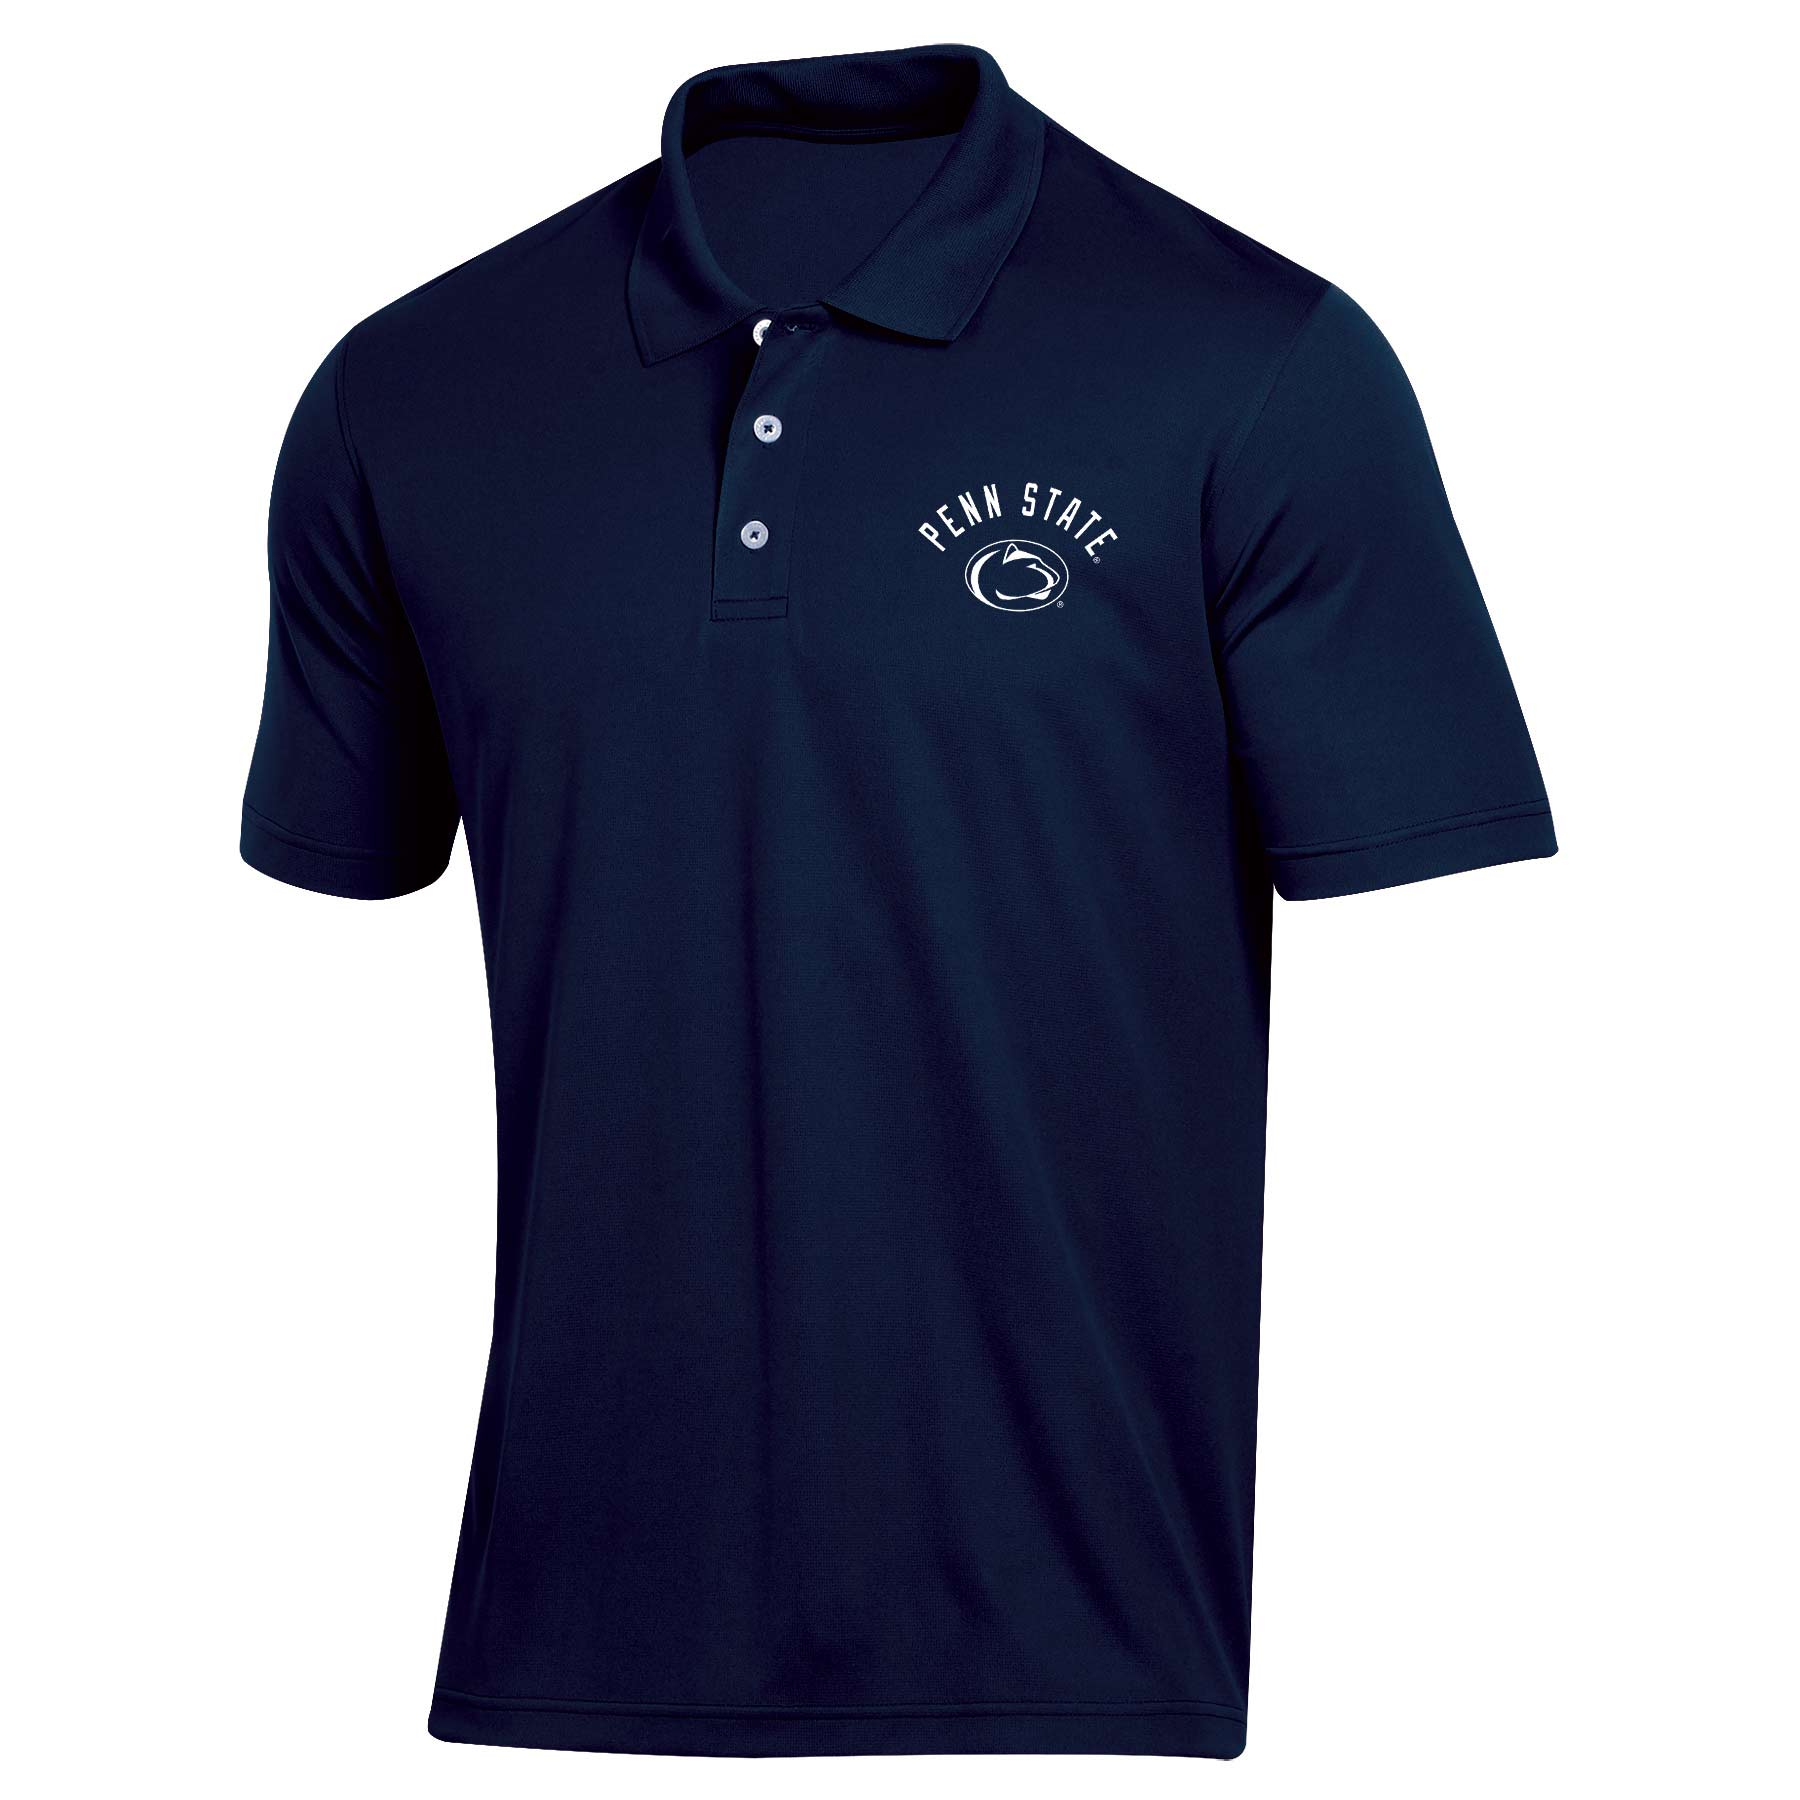 Men's Russell Navy Penn State Nittany Lions Big & Tall Classic Dot Mesh Polo